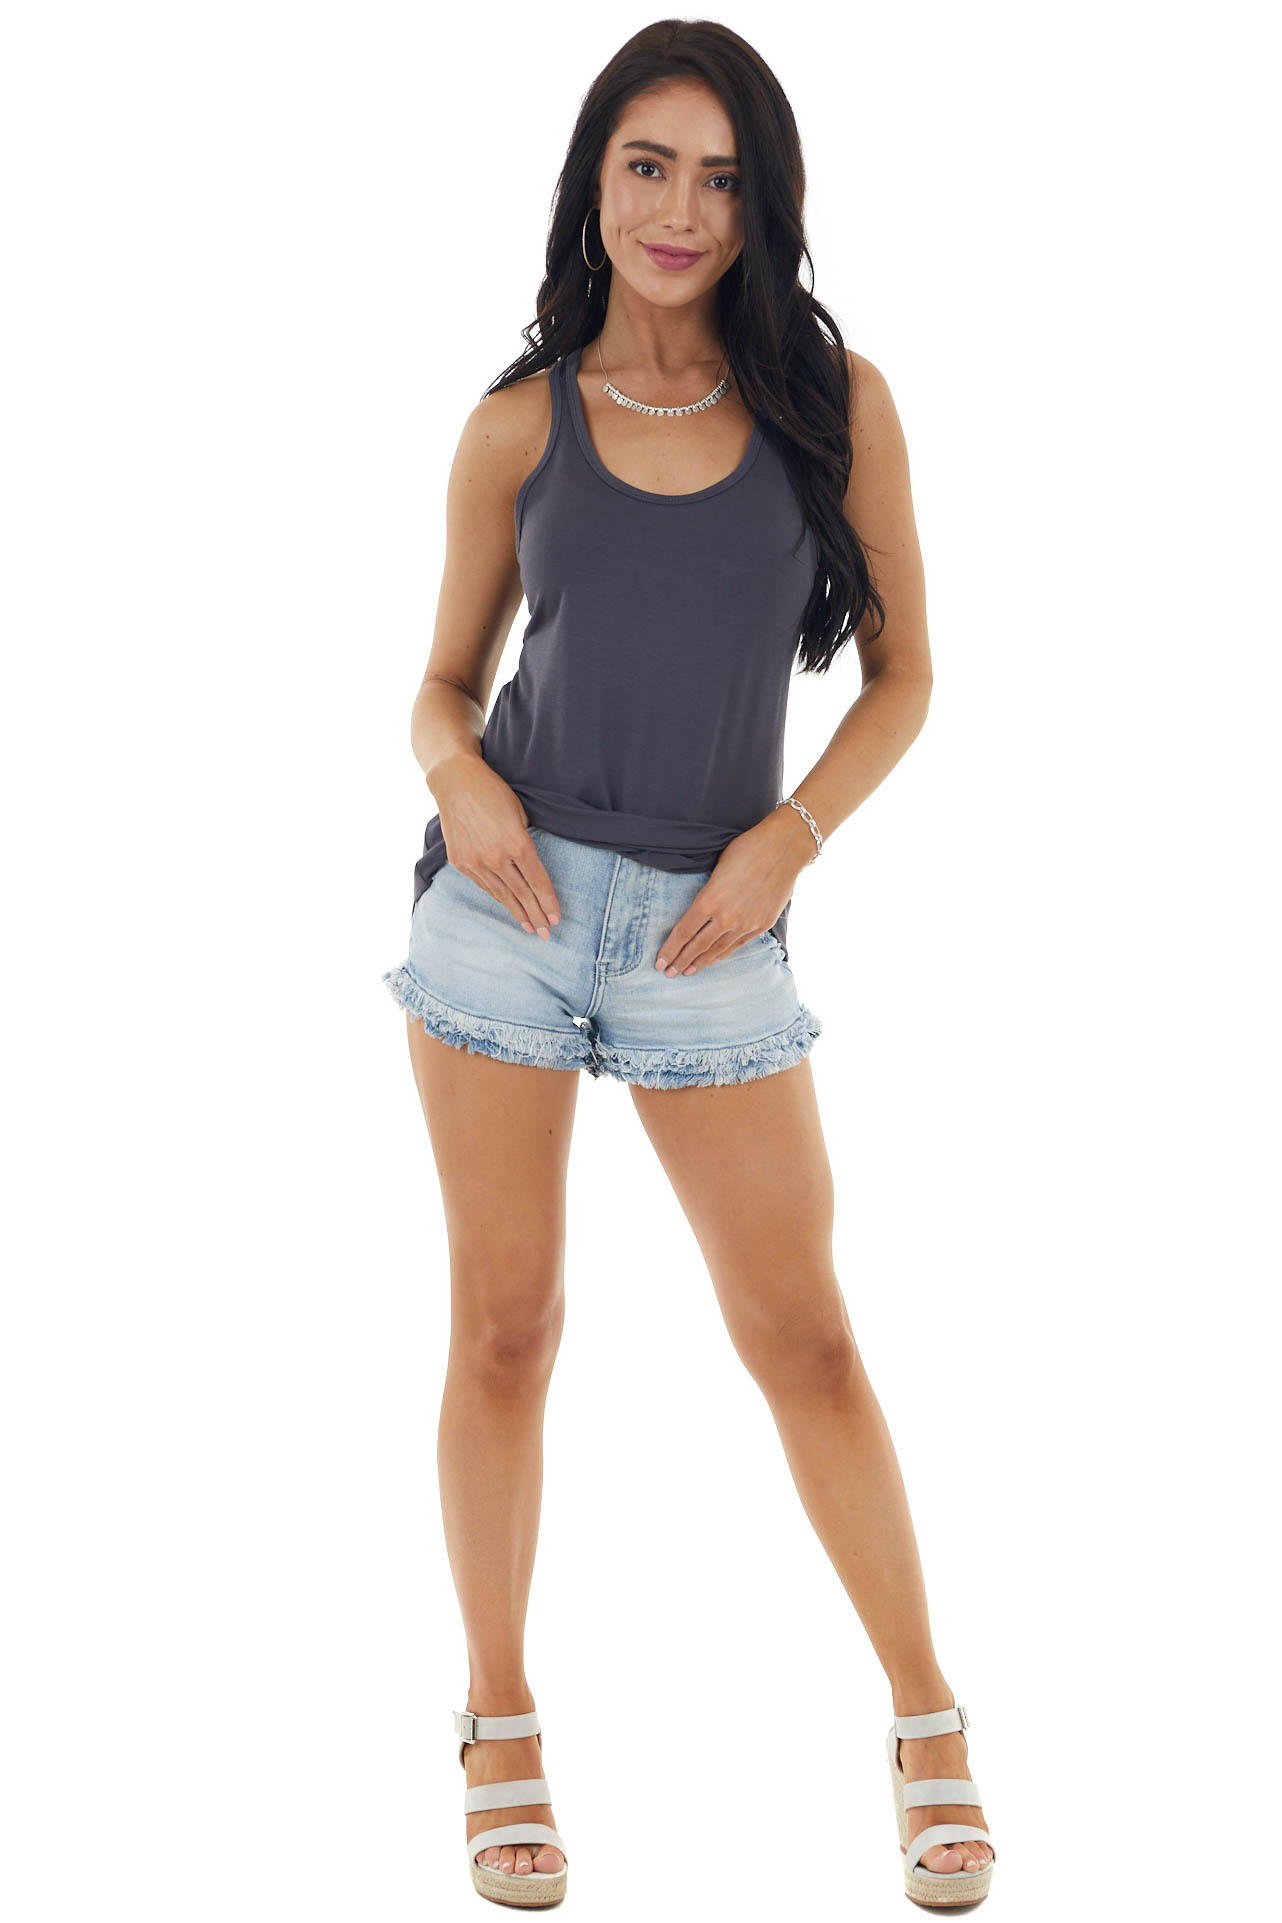 Charcoal Soft Stretchy Knit Tank Top with Racerback